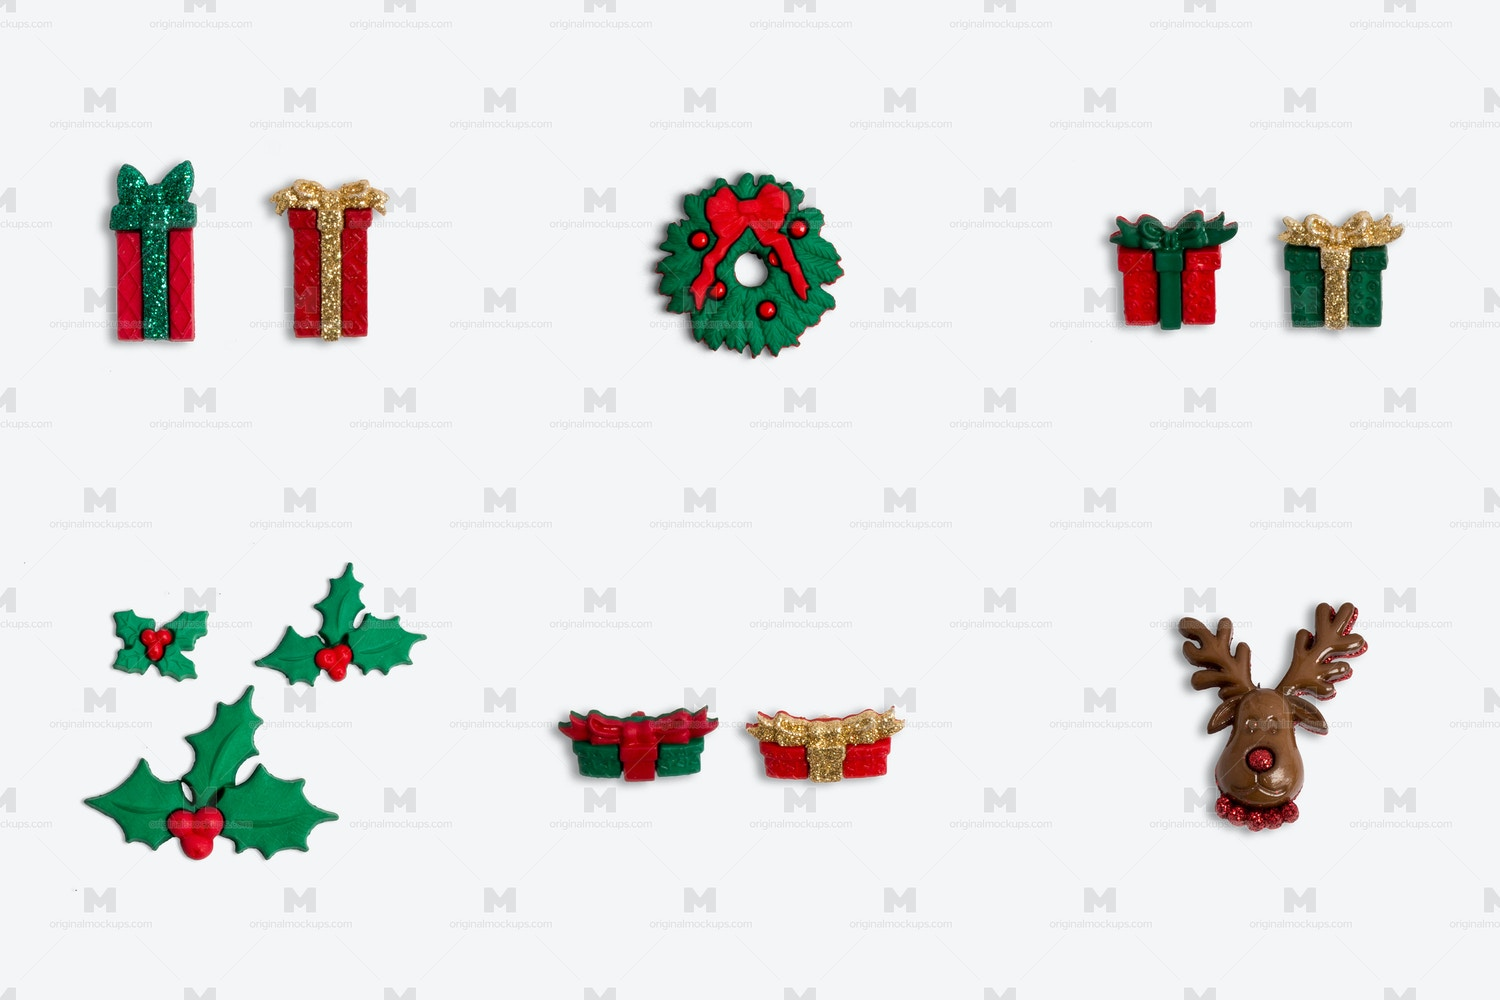 Christmas Buttons Isolate 02 by Original Mockups on Original Mockups